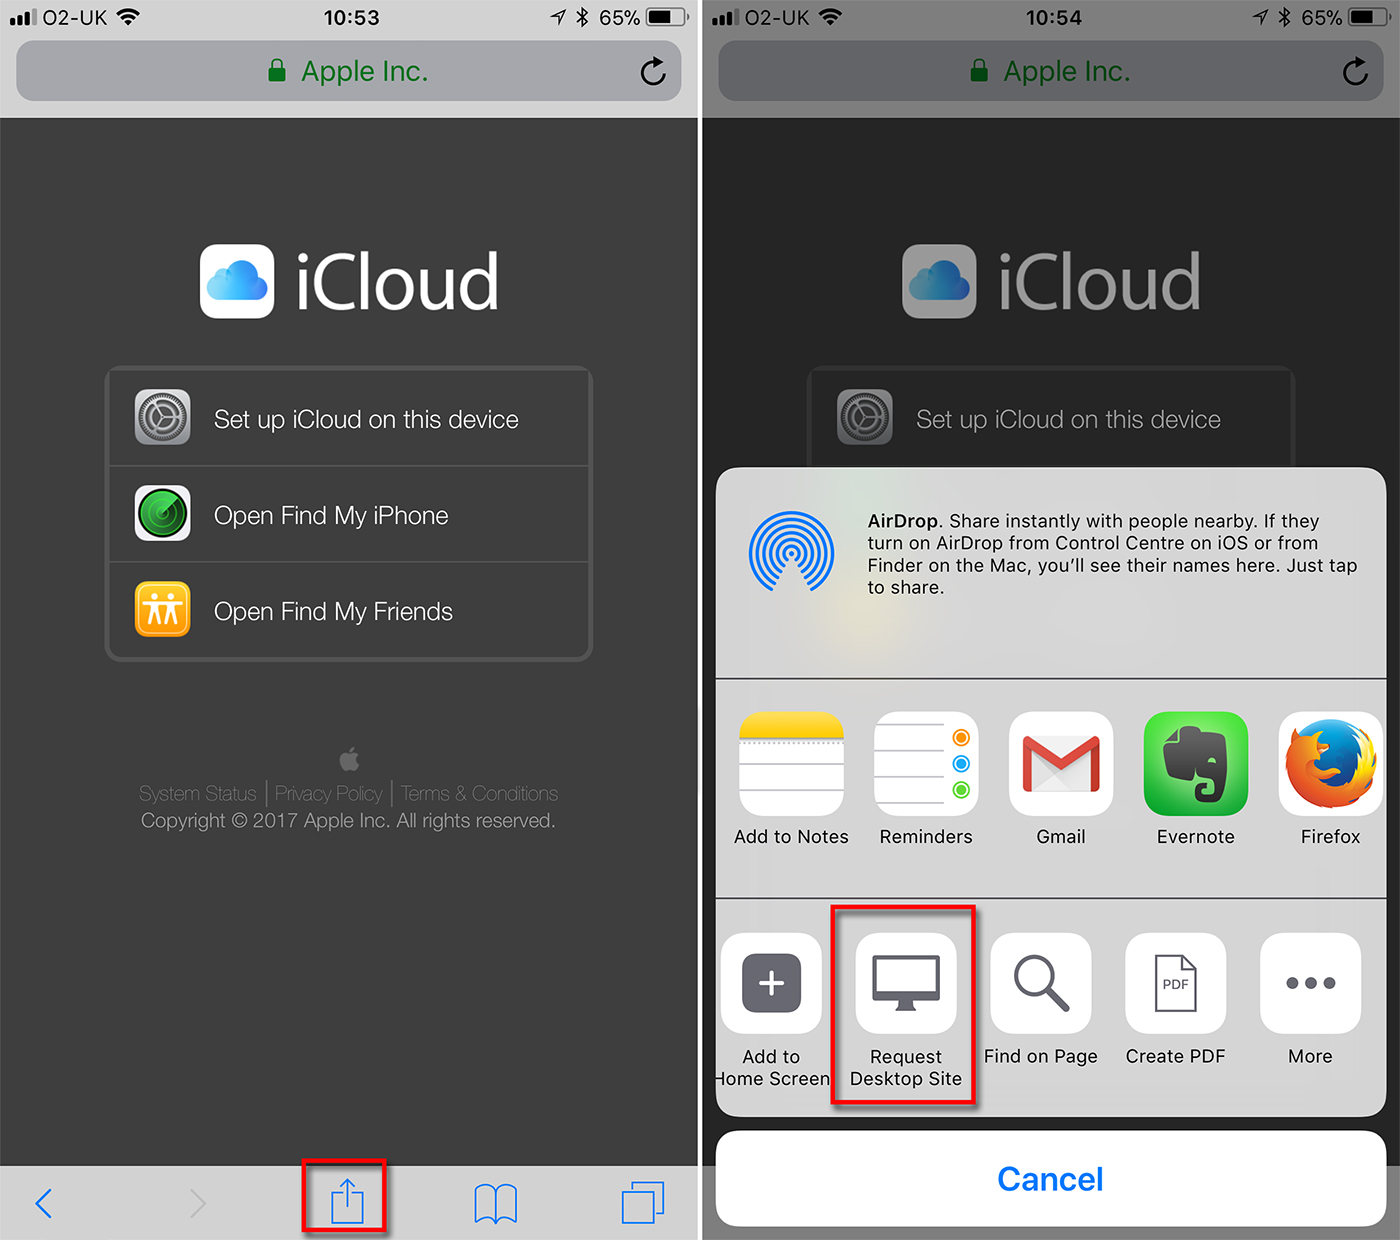 iCloud Login on iPhone using Safari in iOS - latest homepage